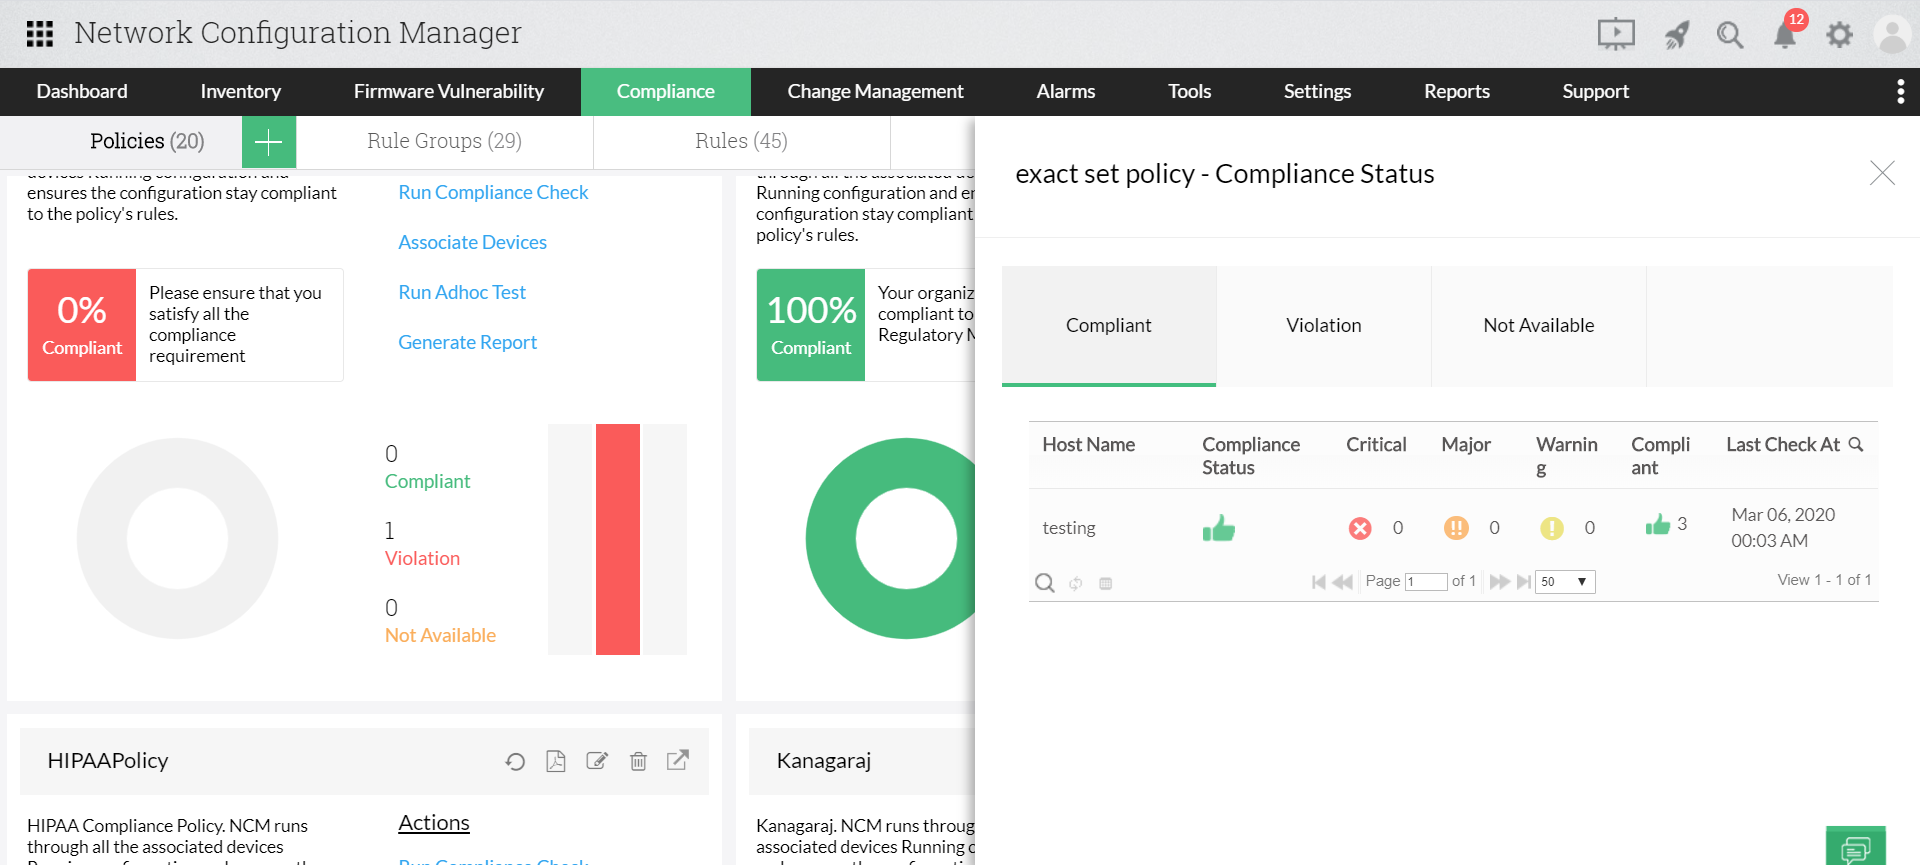 Audit compliance in Siemens Configurations - ManageEngine Network Configuration Manager